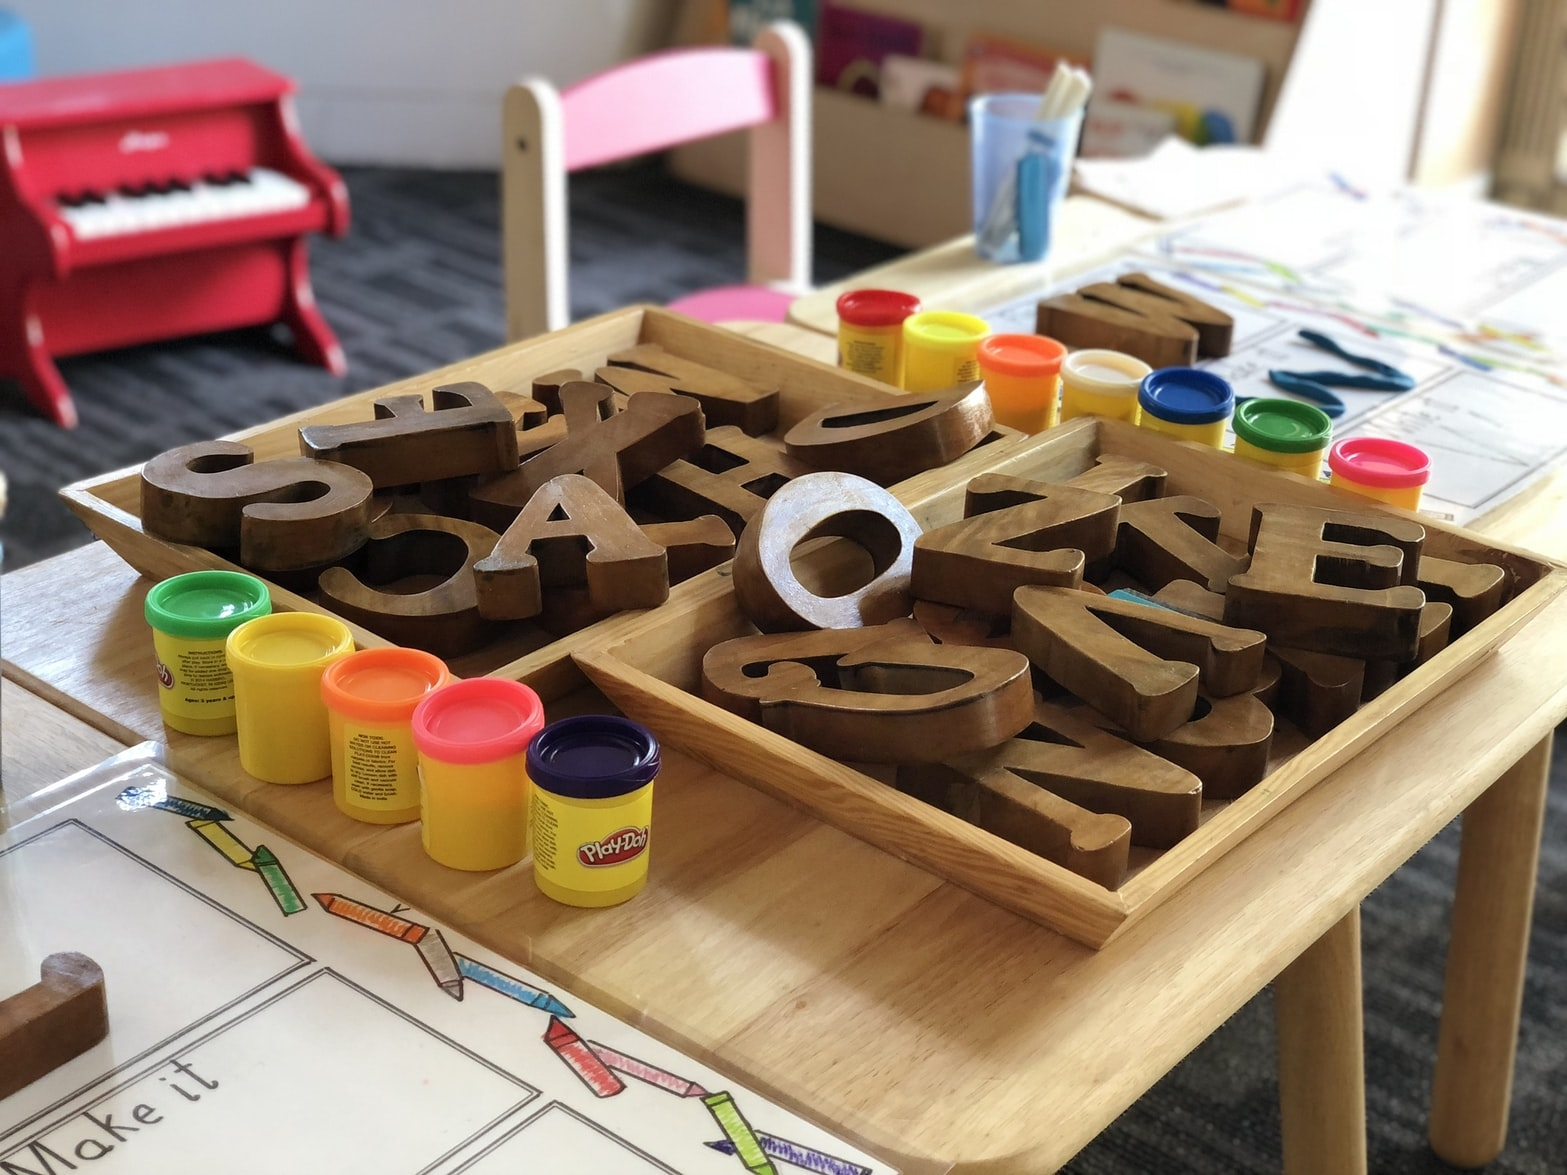 Wooden letters and play-doh on an elementary classroom desk.